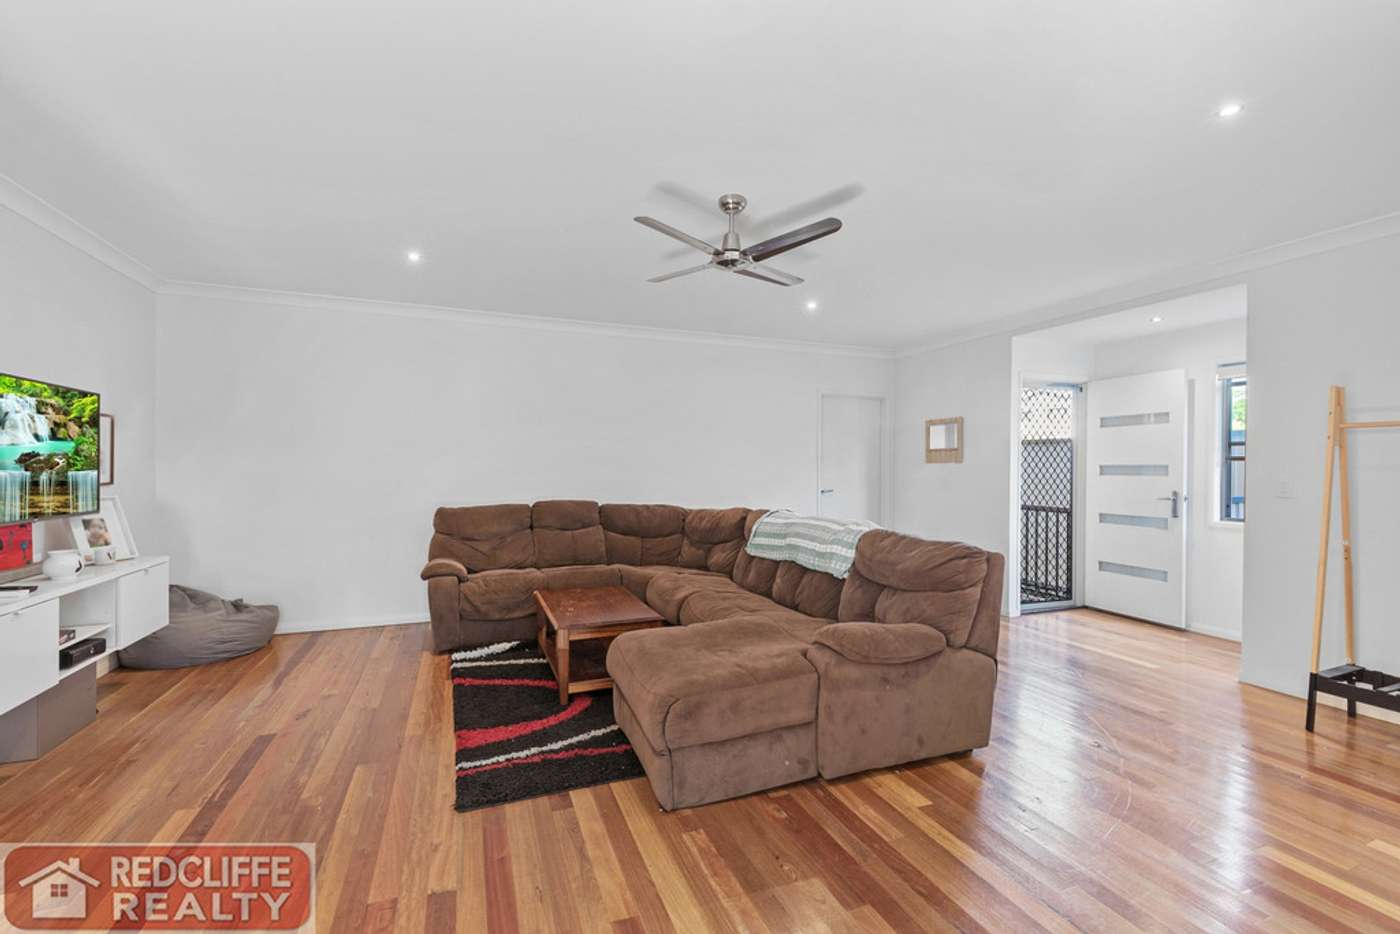 Fifth view of Homely house listing, 44 Keenan Street, Margate QLD 4019